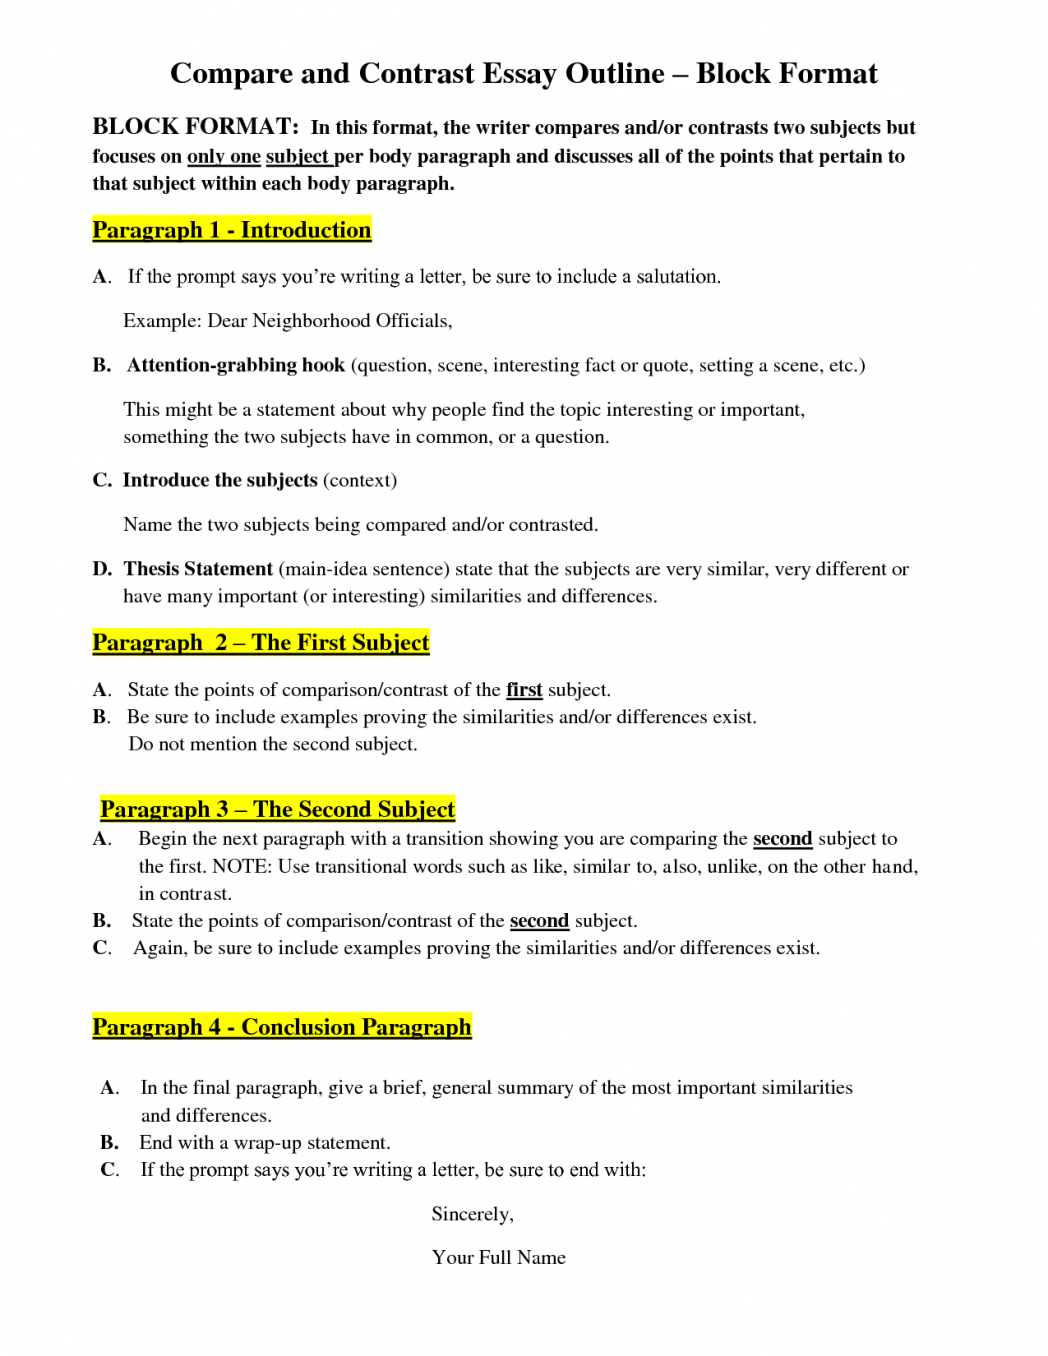 007 Essay Example Essays Compare And Contrasts For Year College Vs Outline Block 1048x1356 Comparison Best Contrast Sample Examples High School Pdf Full